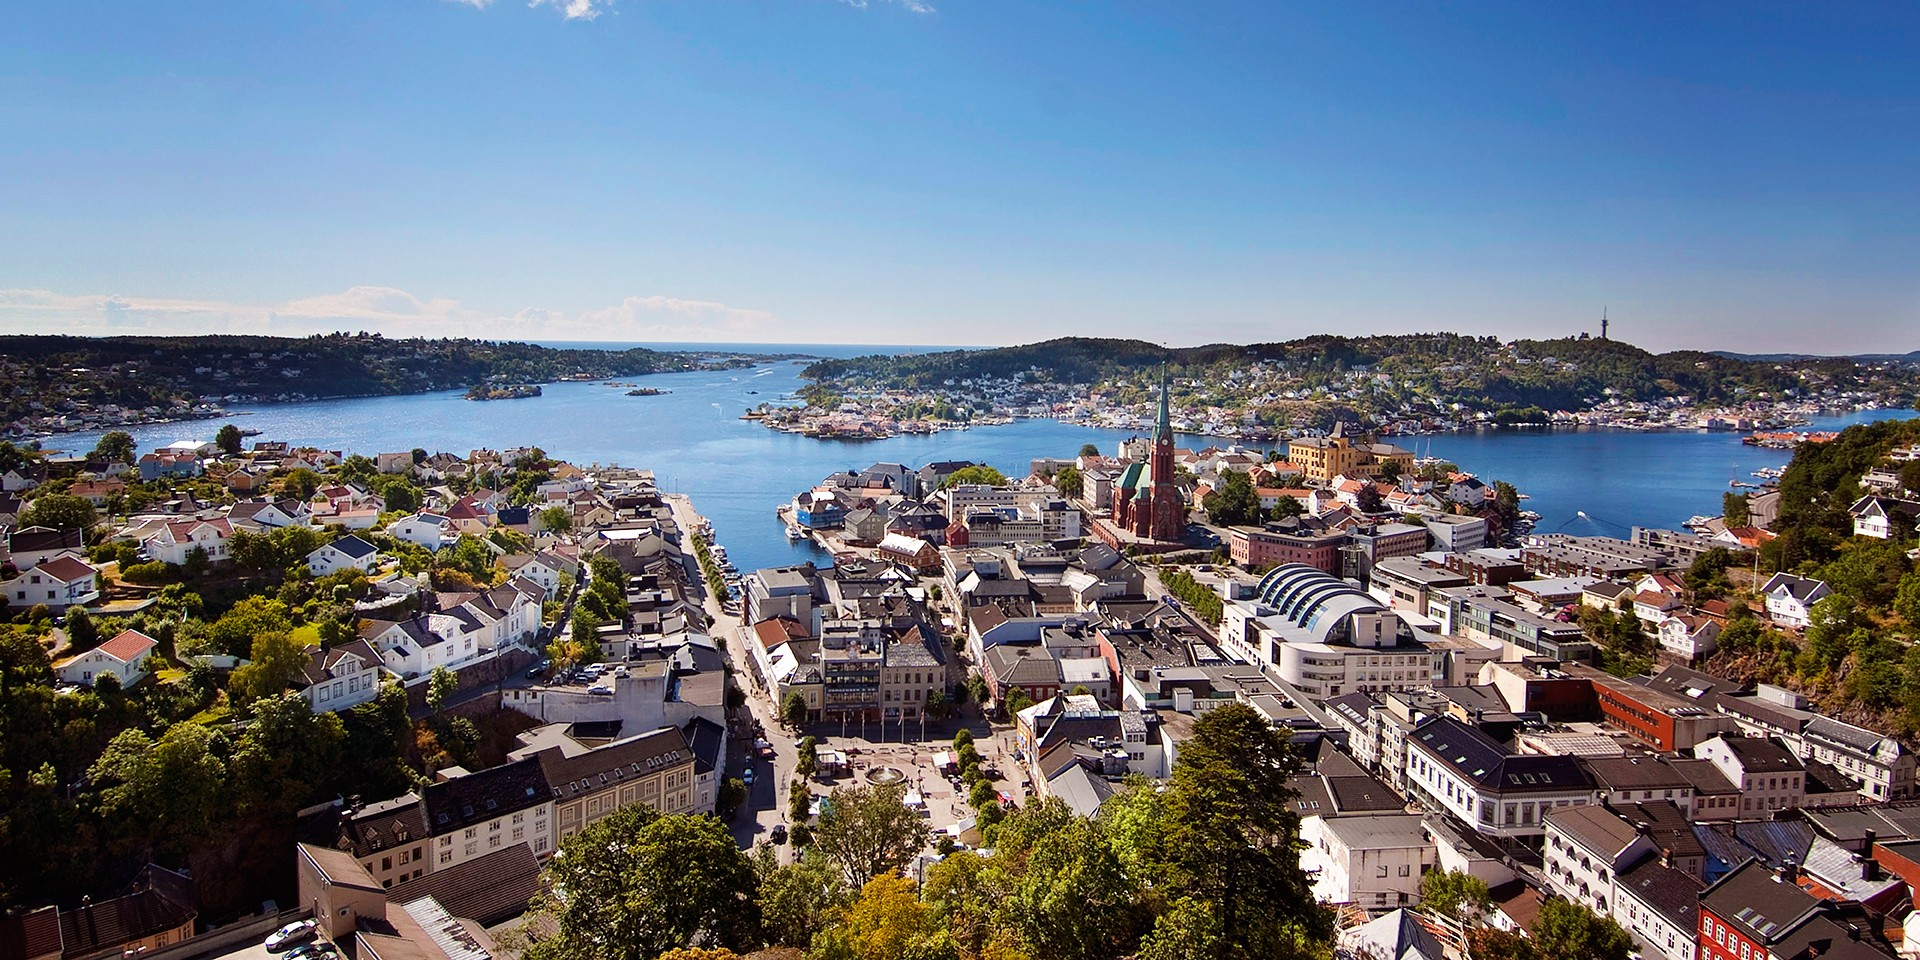 Overview picture of Arendal city with waterfront and surrounding islands